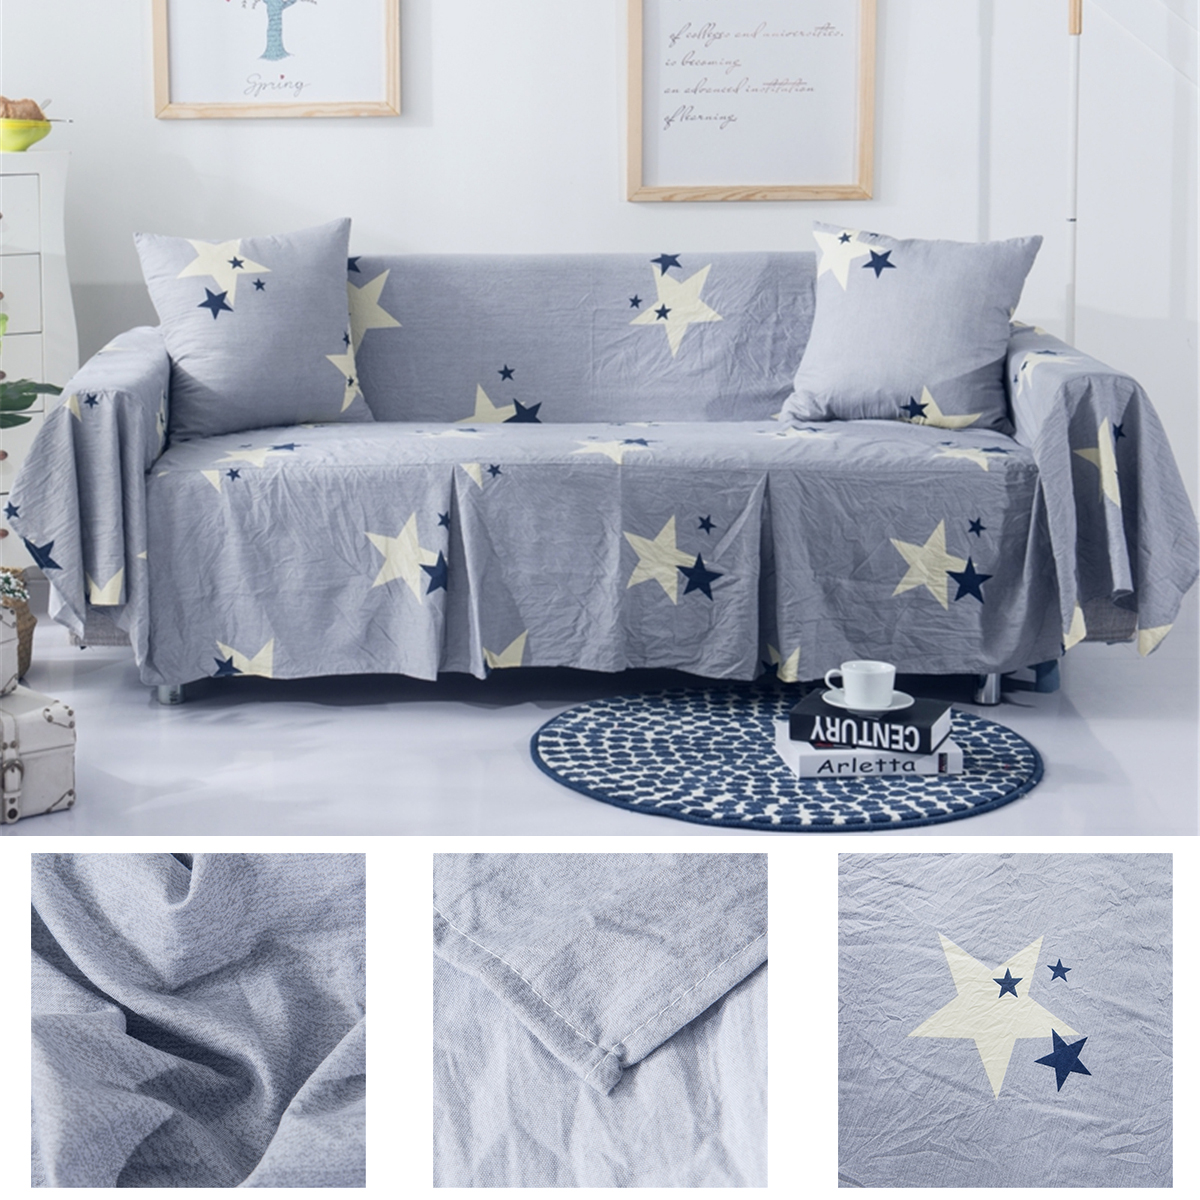 1/2/3 Seaters Chair Covers Sofa Covers Star Furniture Couch Protectors Chair Throw Mats